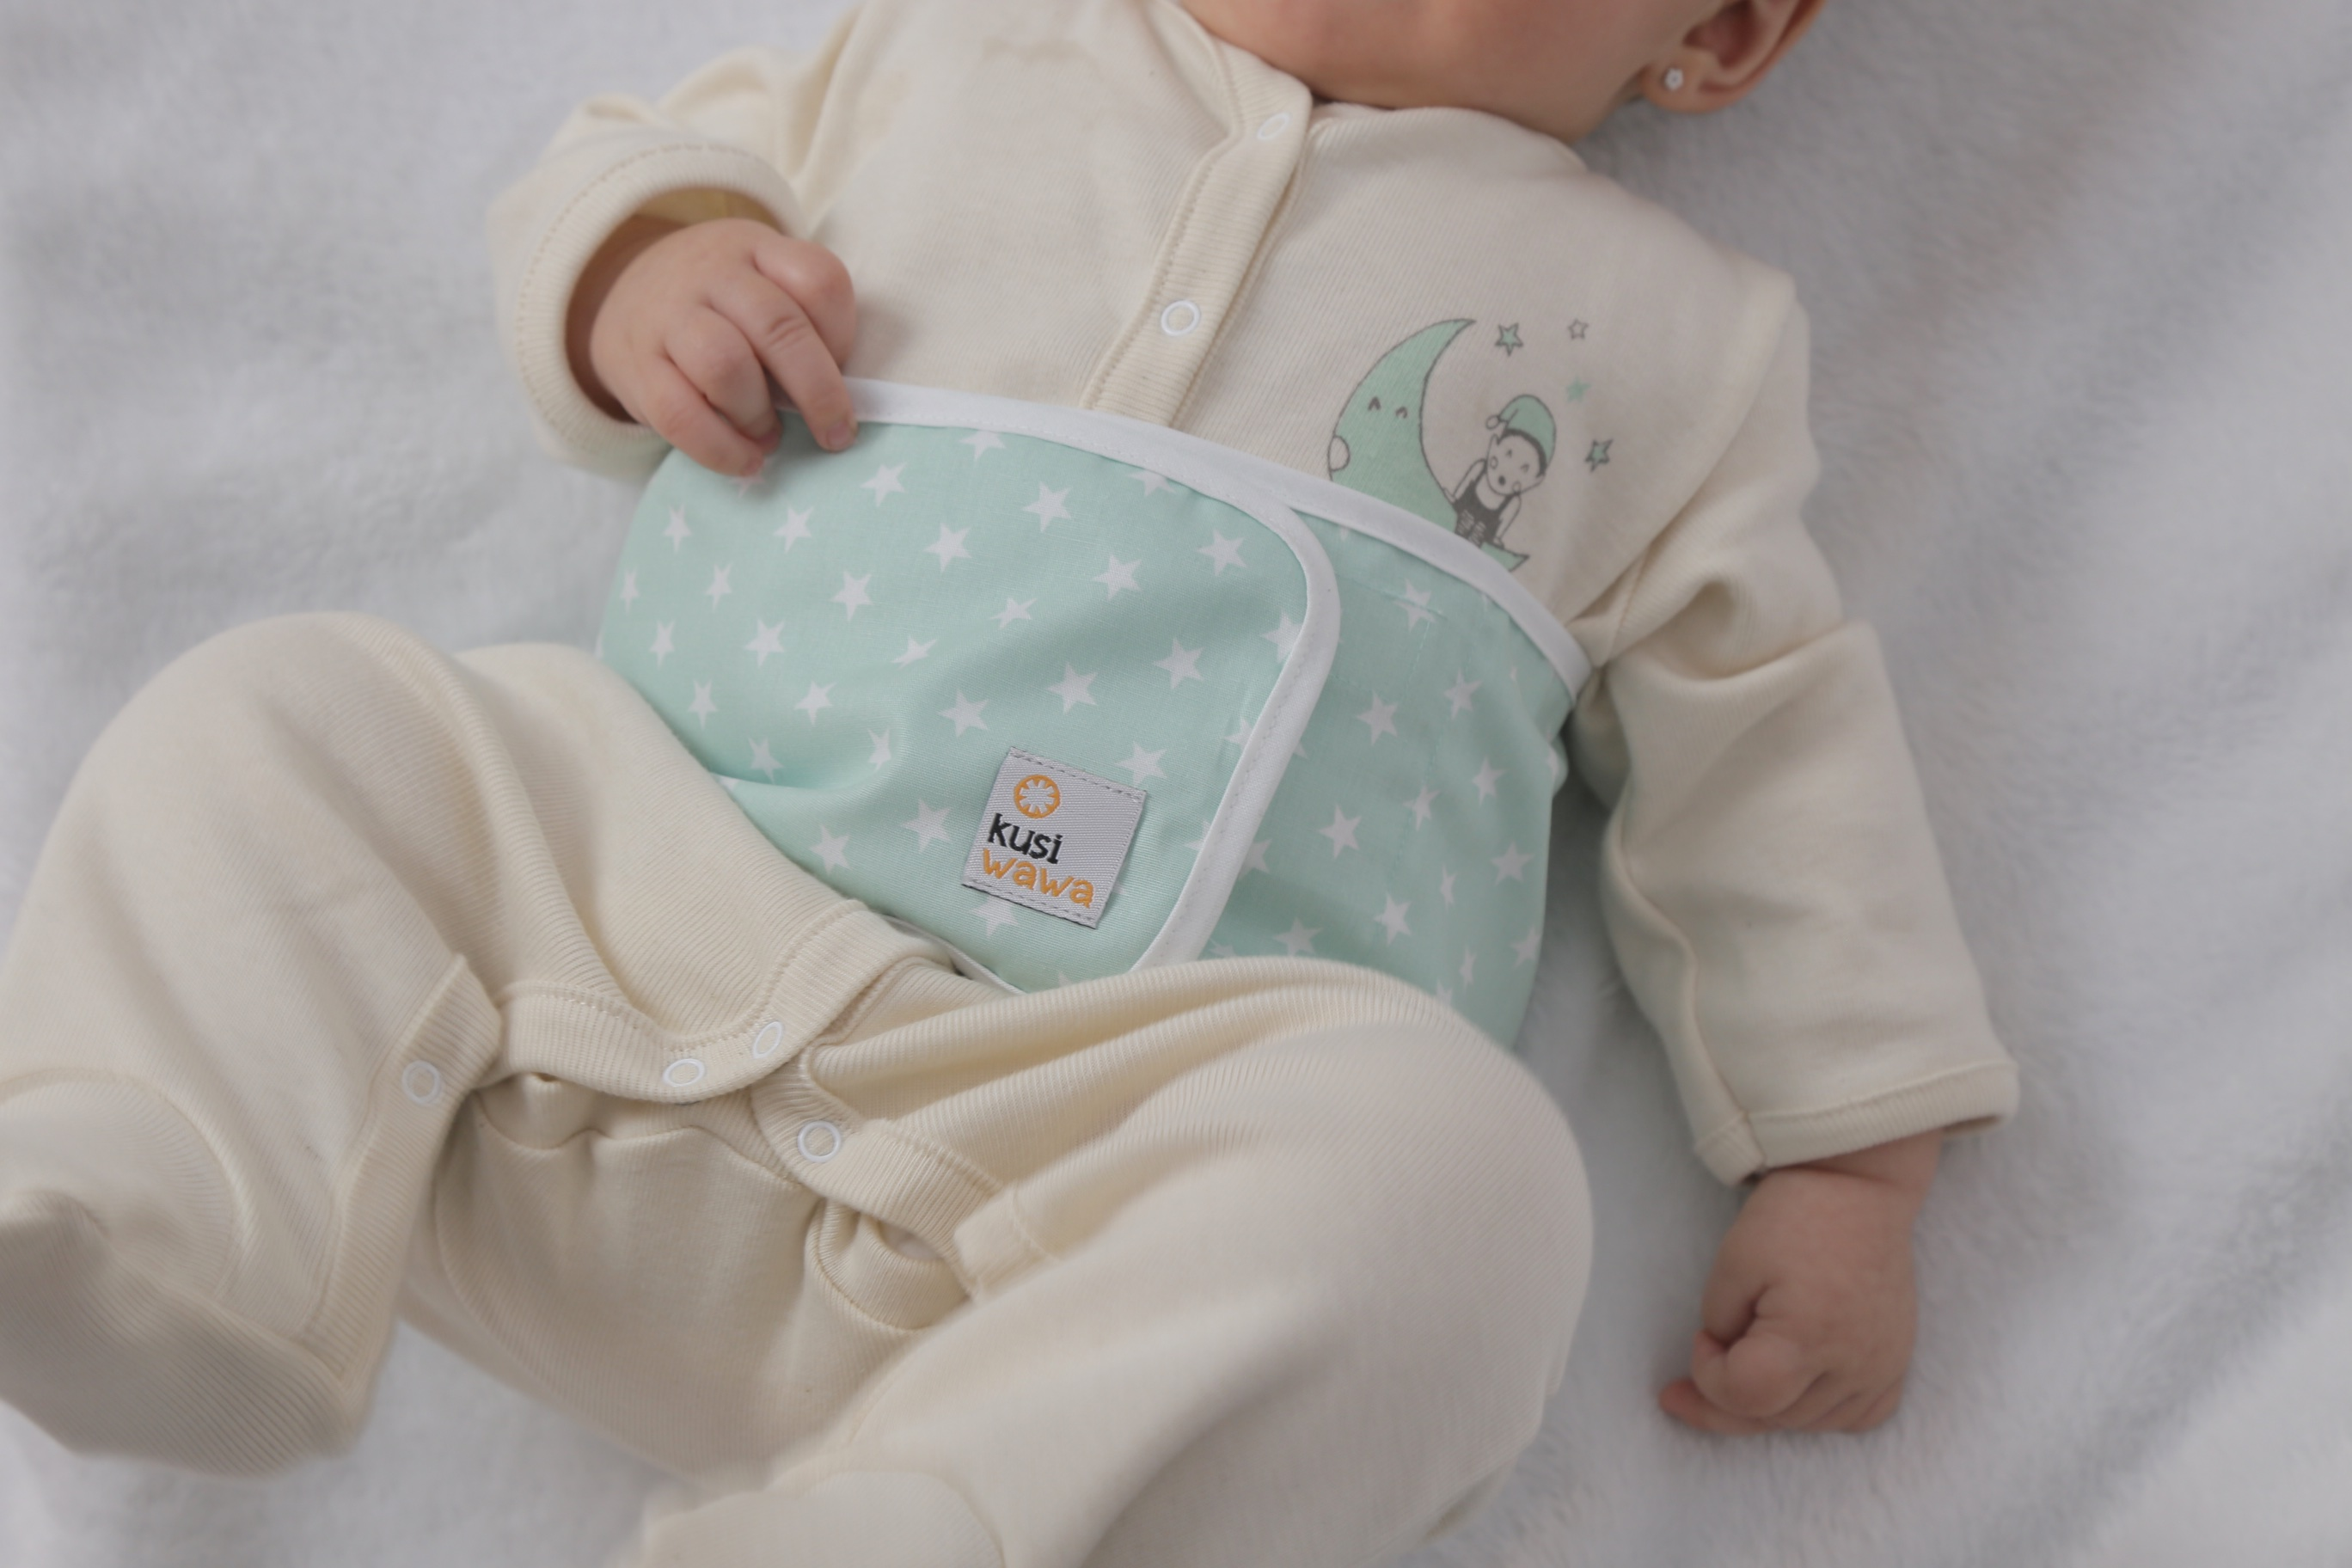 The thermal pad of the Wawa Band to alieviate baby colic